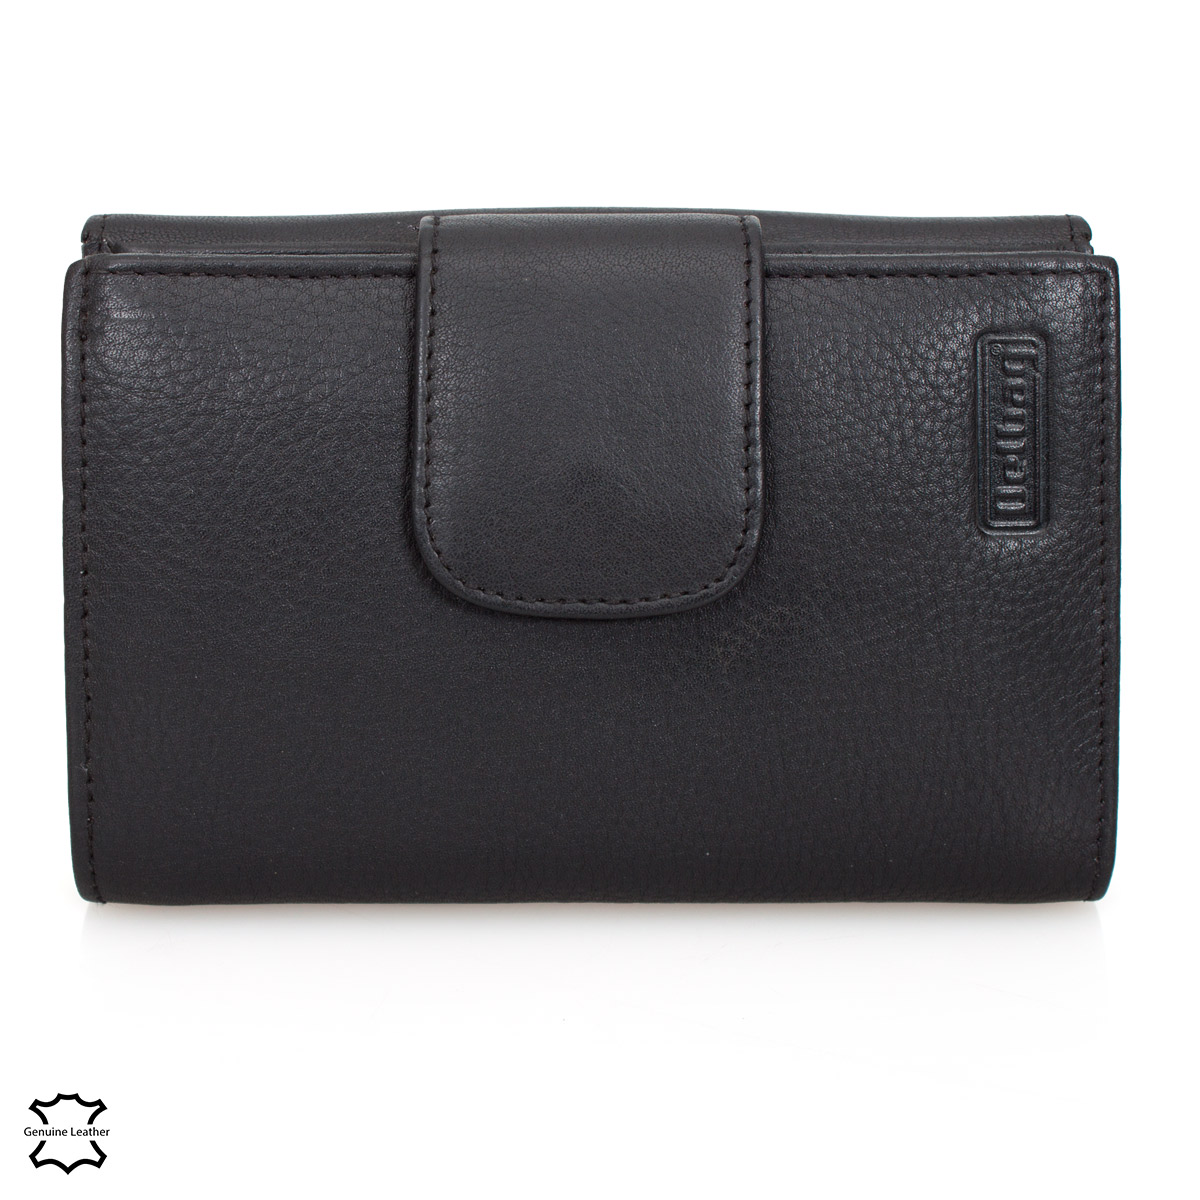 DELBAG Womens Leather Wallet 14cm Black – image 2